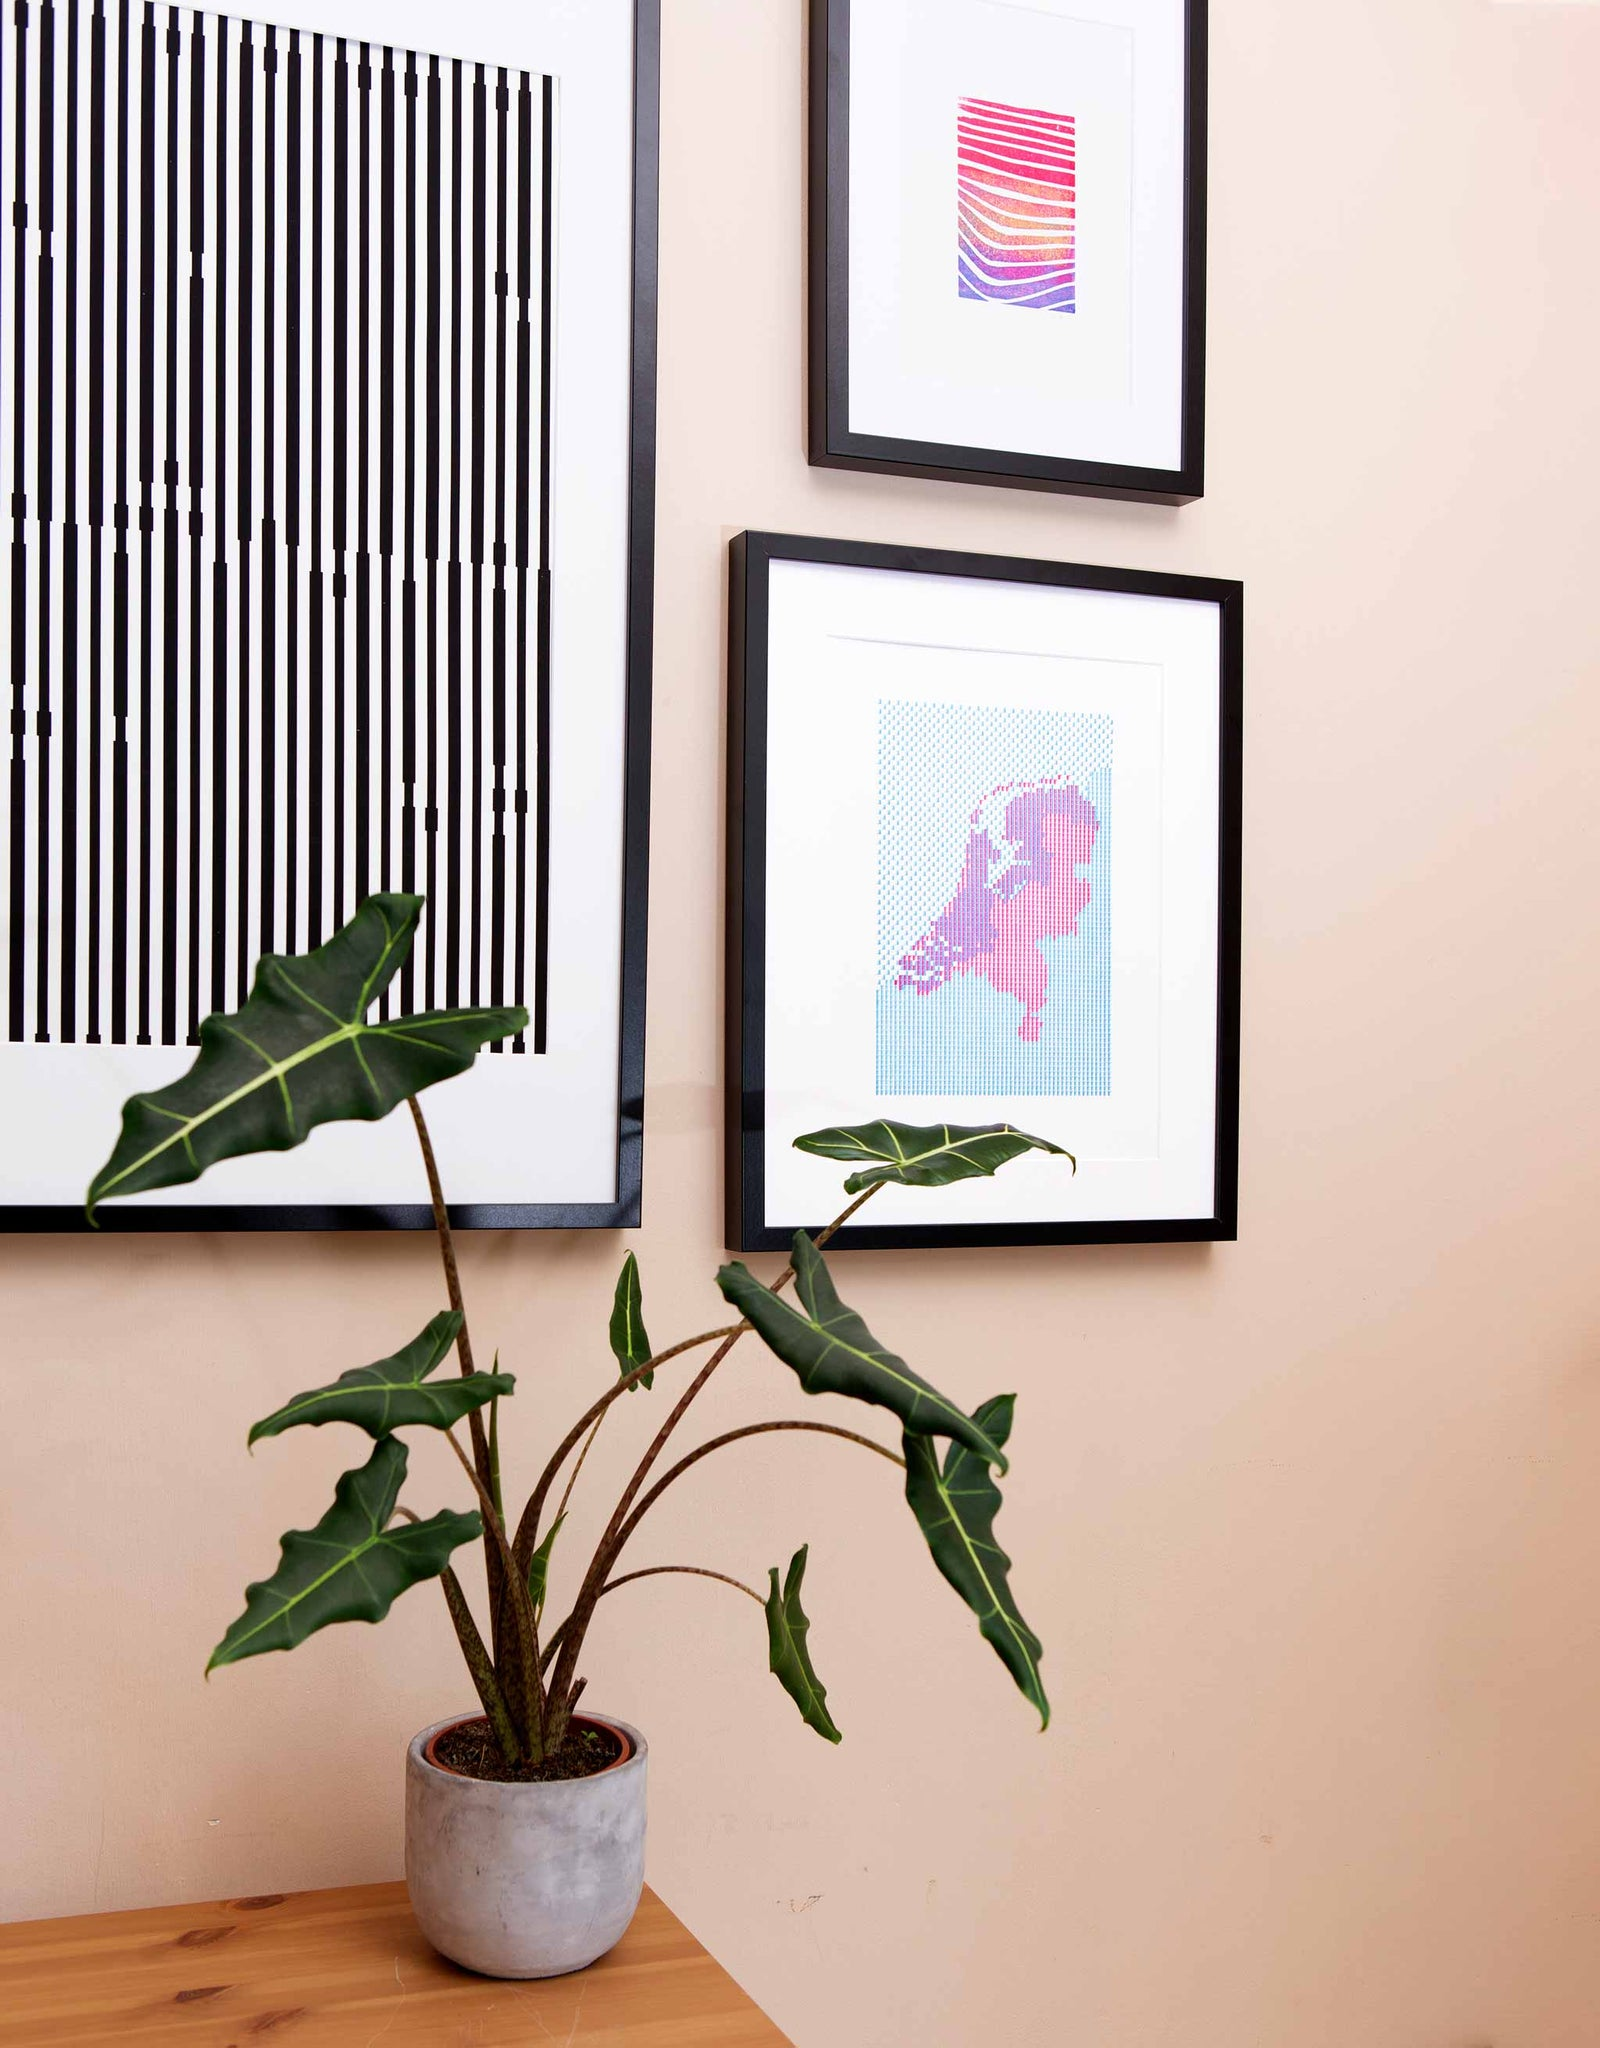 Angle view of Letterpress patterned map of The Netherlands in magenta and blue. Shown in black frame on wall with plant and other art.